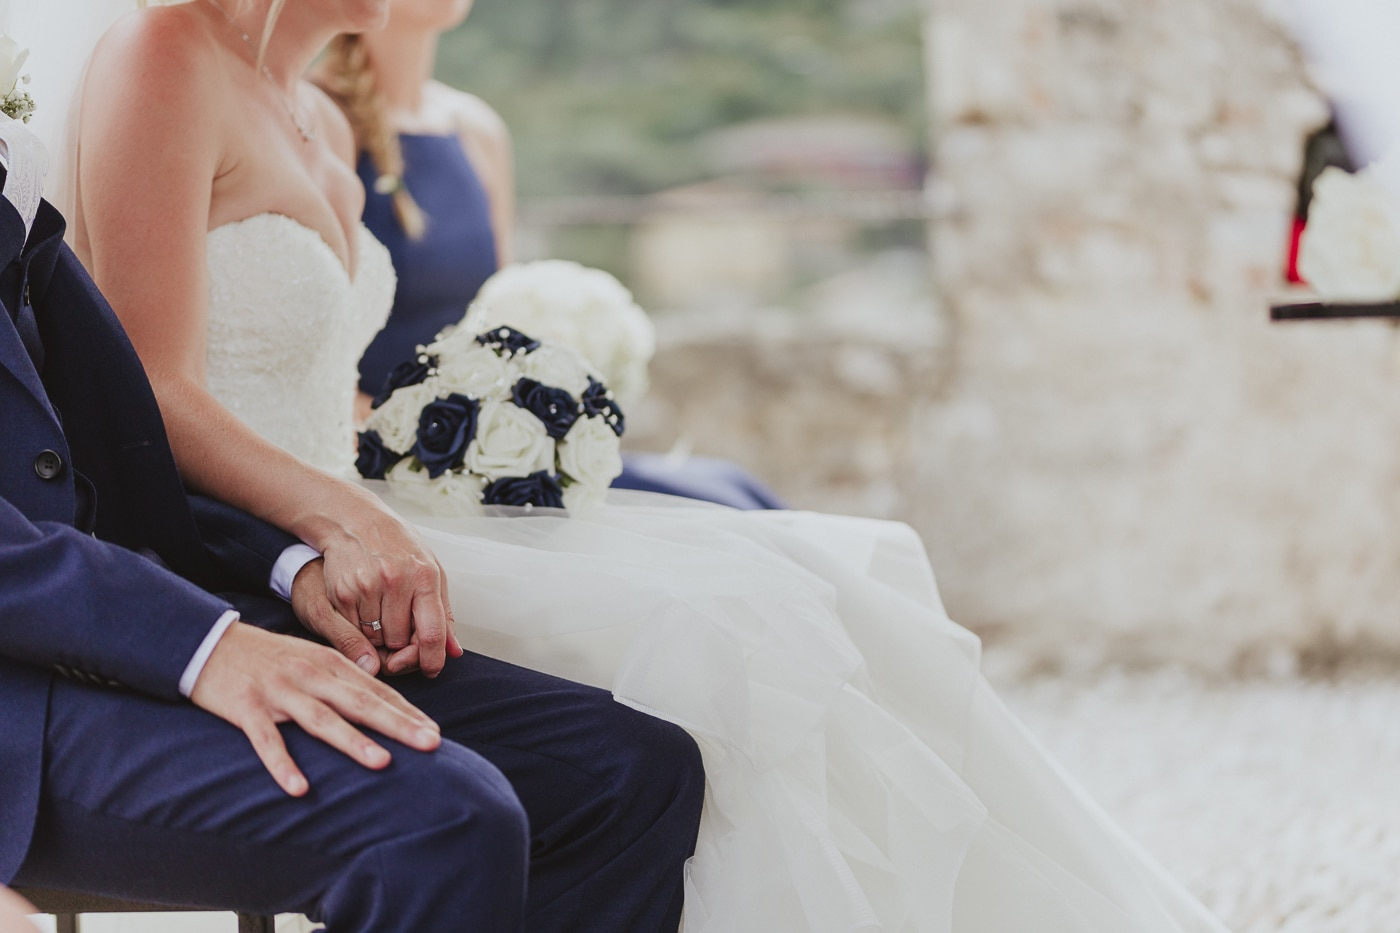 Bride with ring on her finger and flowers in her lap holds on to her grooms hand during the ceremony